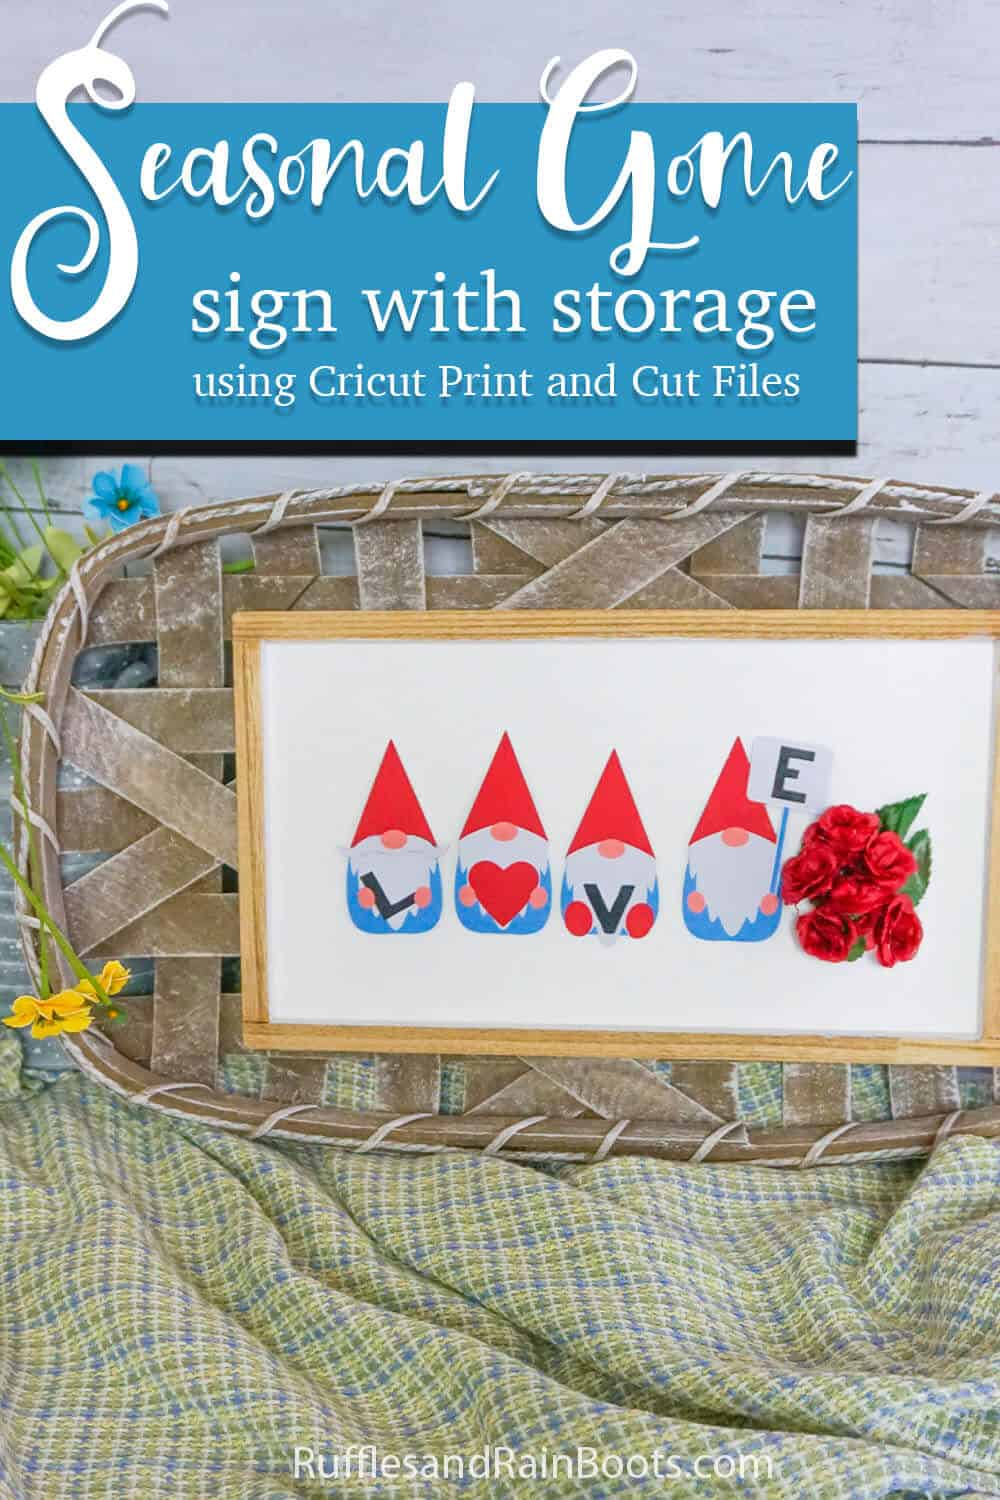 close up of a wall sign with magnetic gnomes with text which reads seasonal gnome sign with storage using cricut print and cut files